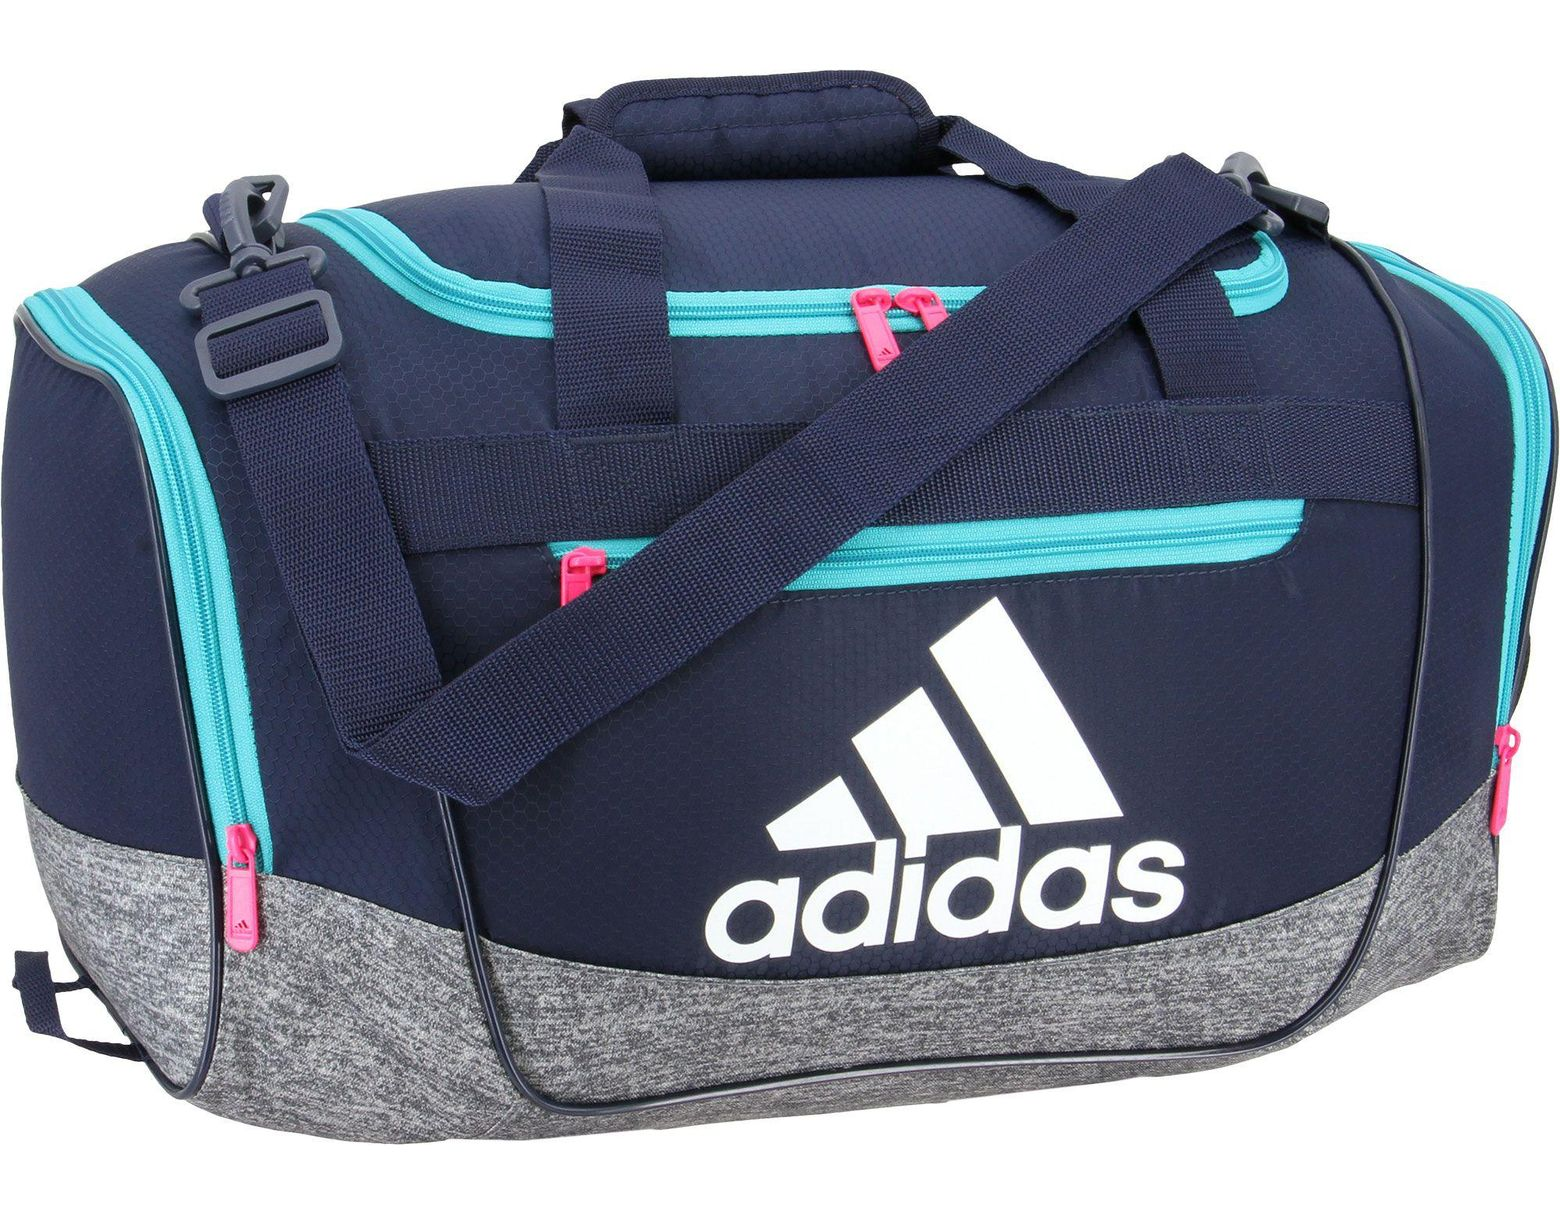 87b2aadfc60 adidas Defender Iii Small Duffle Bag in Blue for Men - Lyst